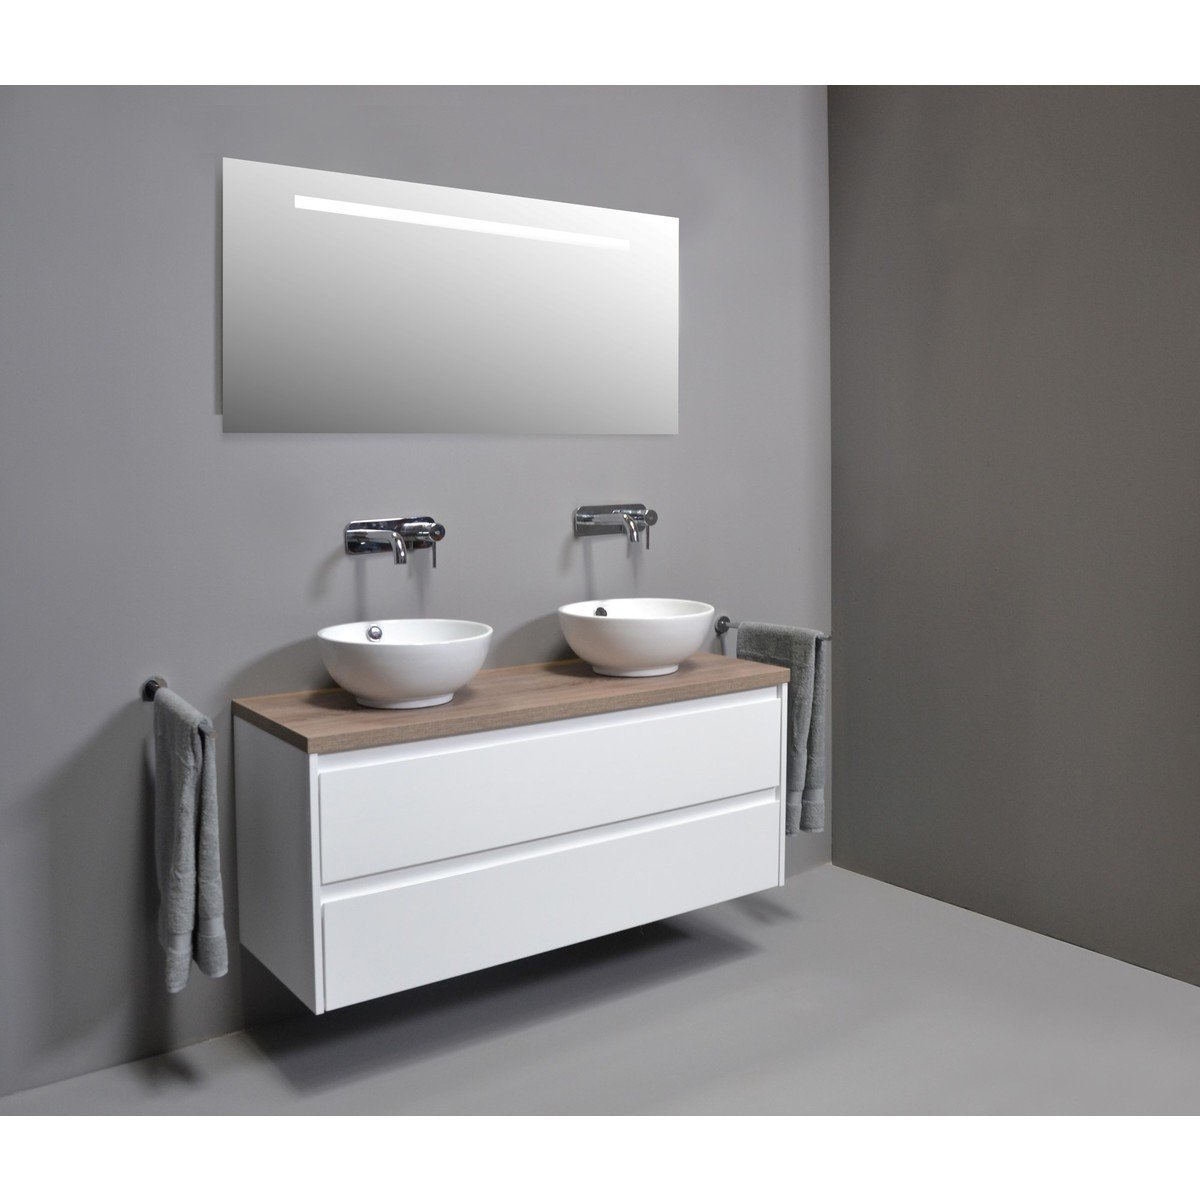 lavabo salle de bain rectangulaire. Black Bedroom Furniture Sets. Home Design Ideas